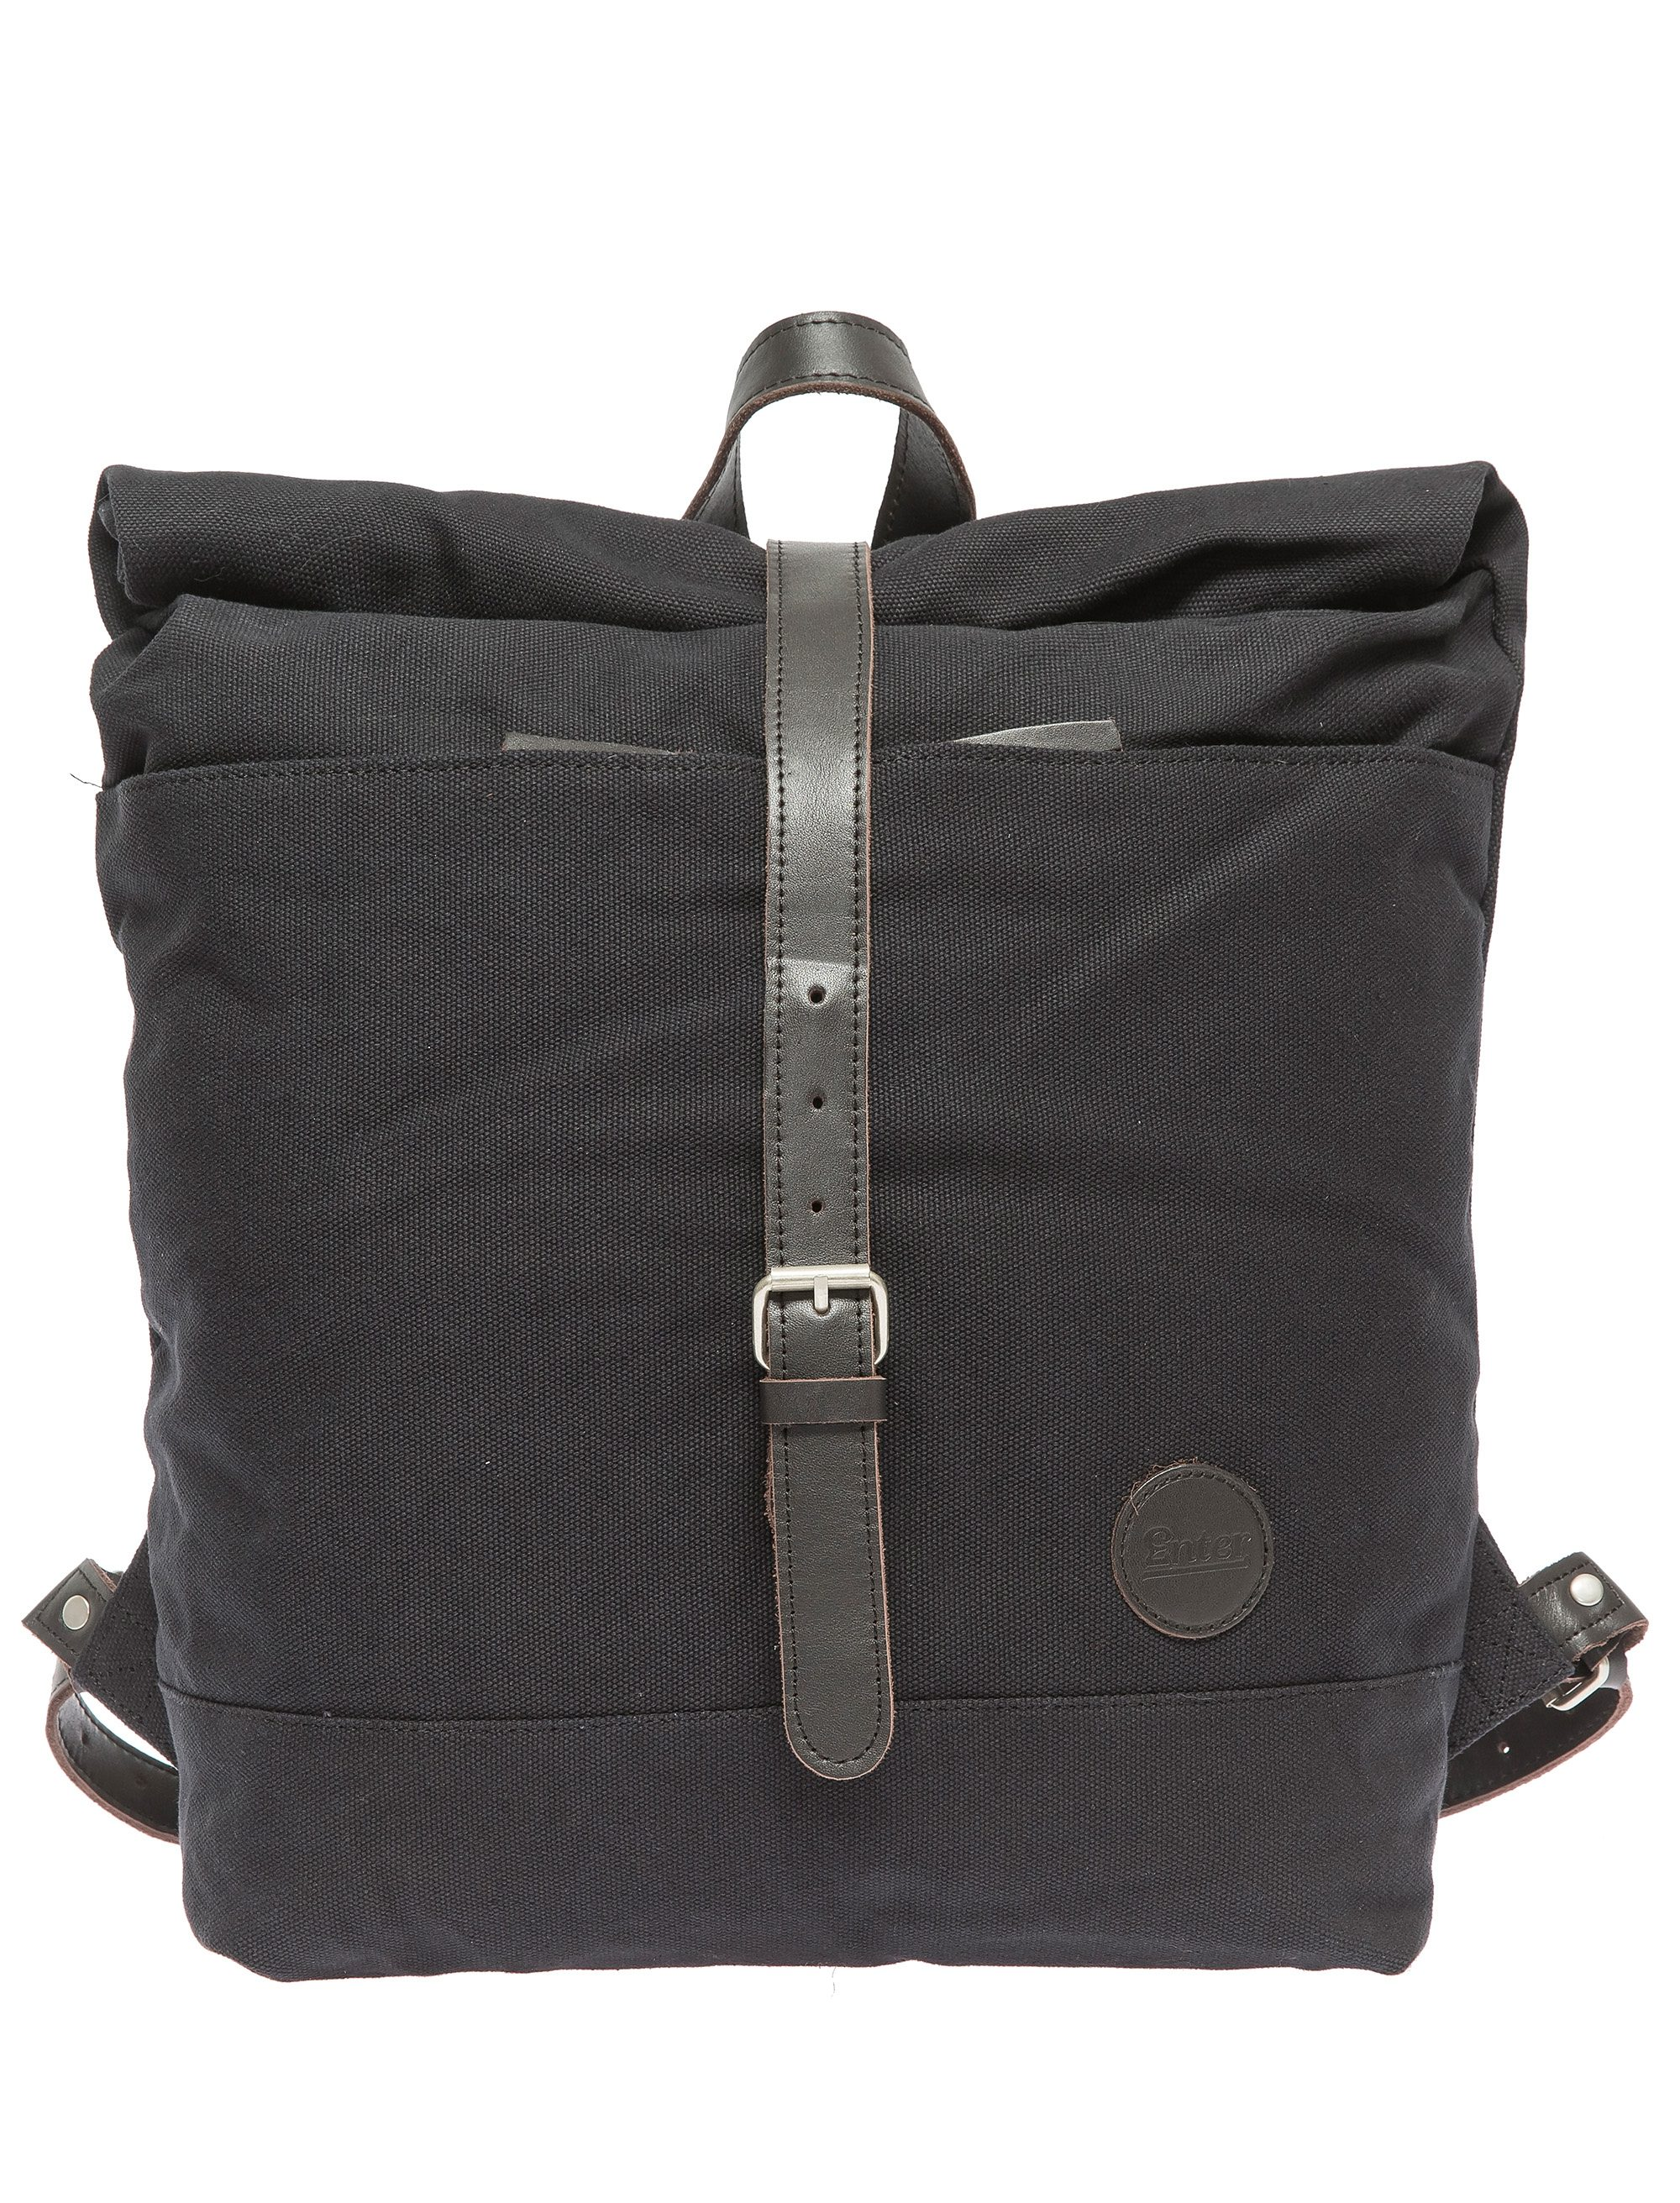 Enter Rucksack mit Aufroll-Verschluss, »Roll Top Backpack, Black/Dark Brown«